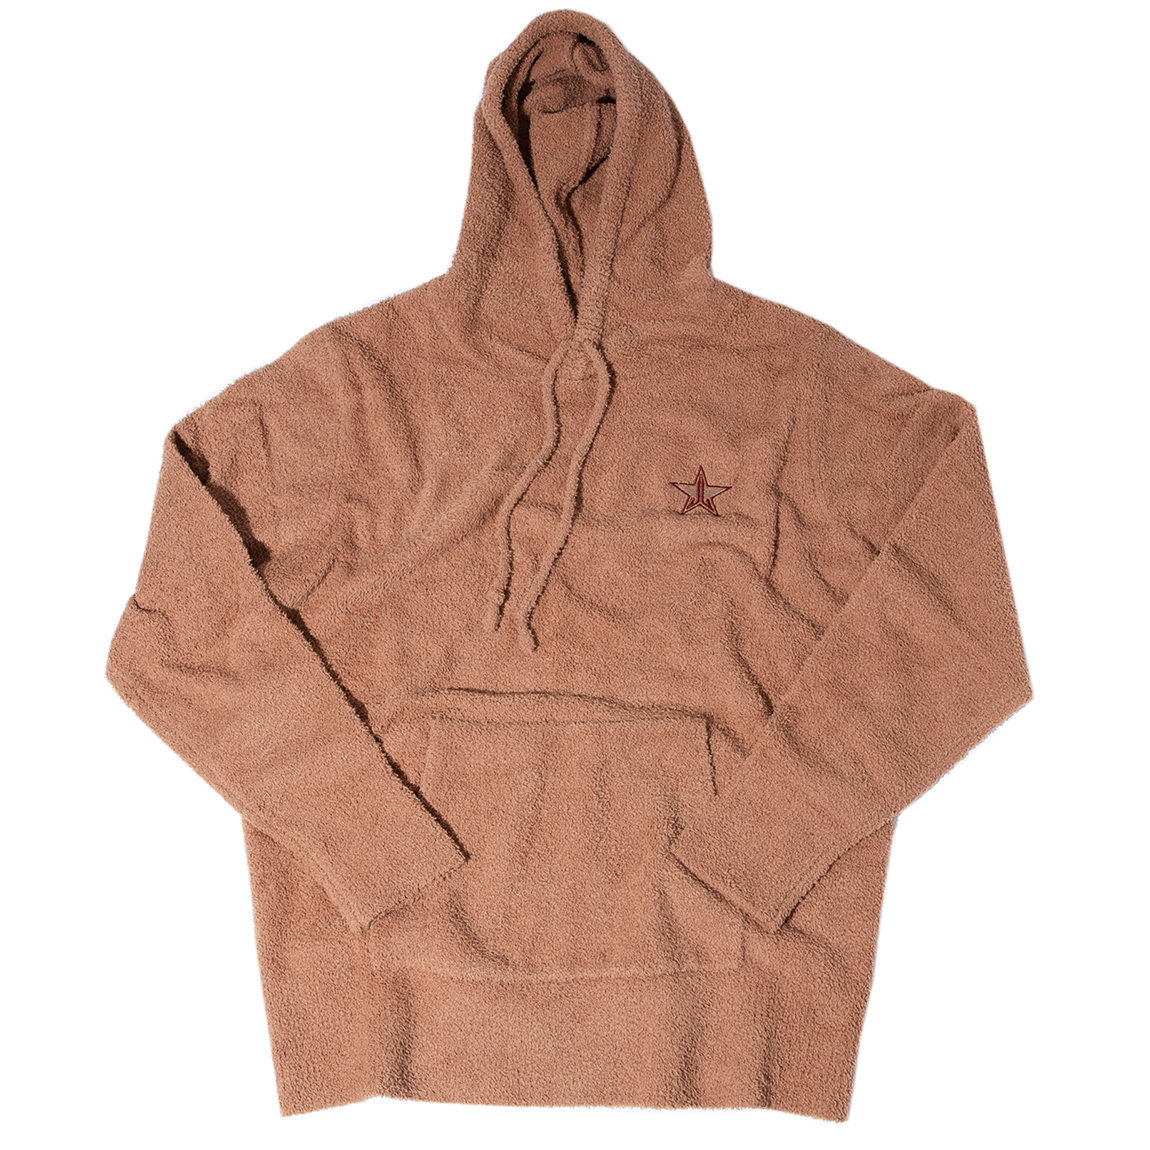 Jeffree Star Cosmetics Tan Teddy Pullover Small alternative view 1 - product swatch.